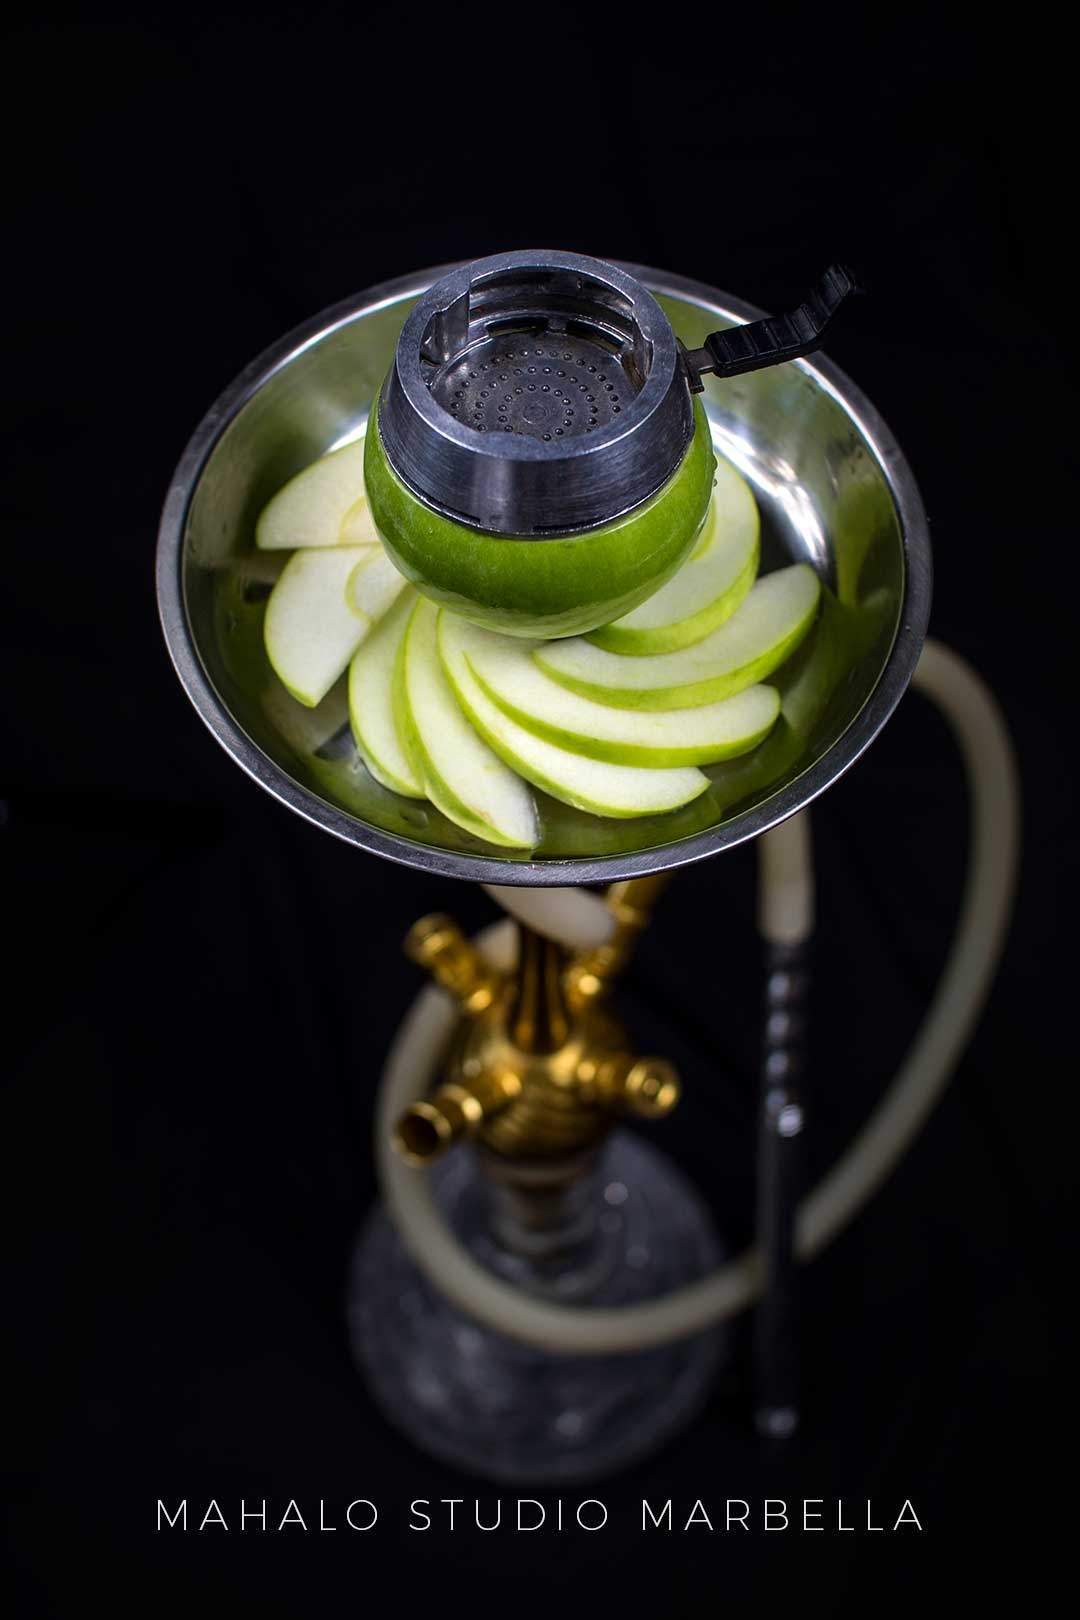 Apple Hookah Fruit Bowl Dark Black Background